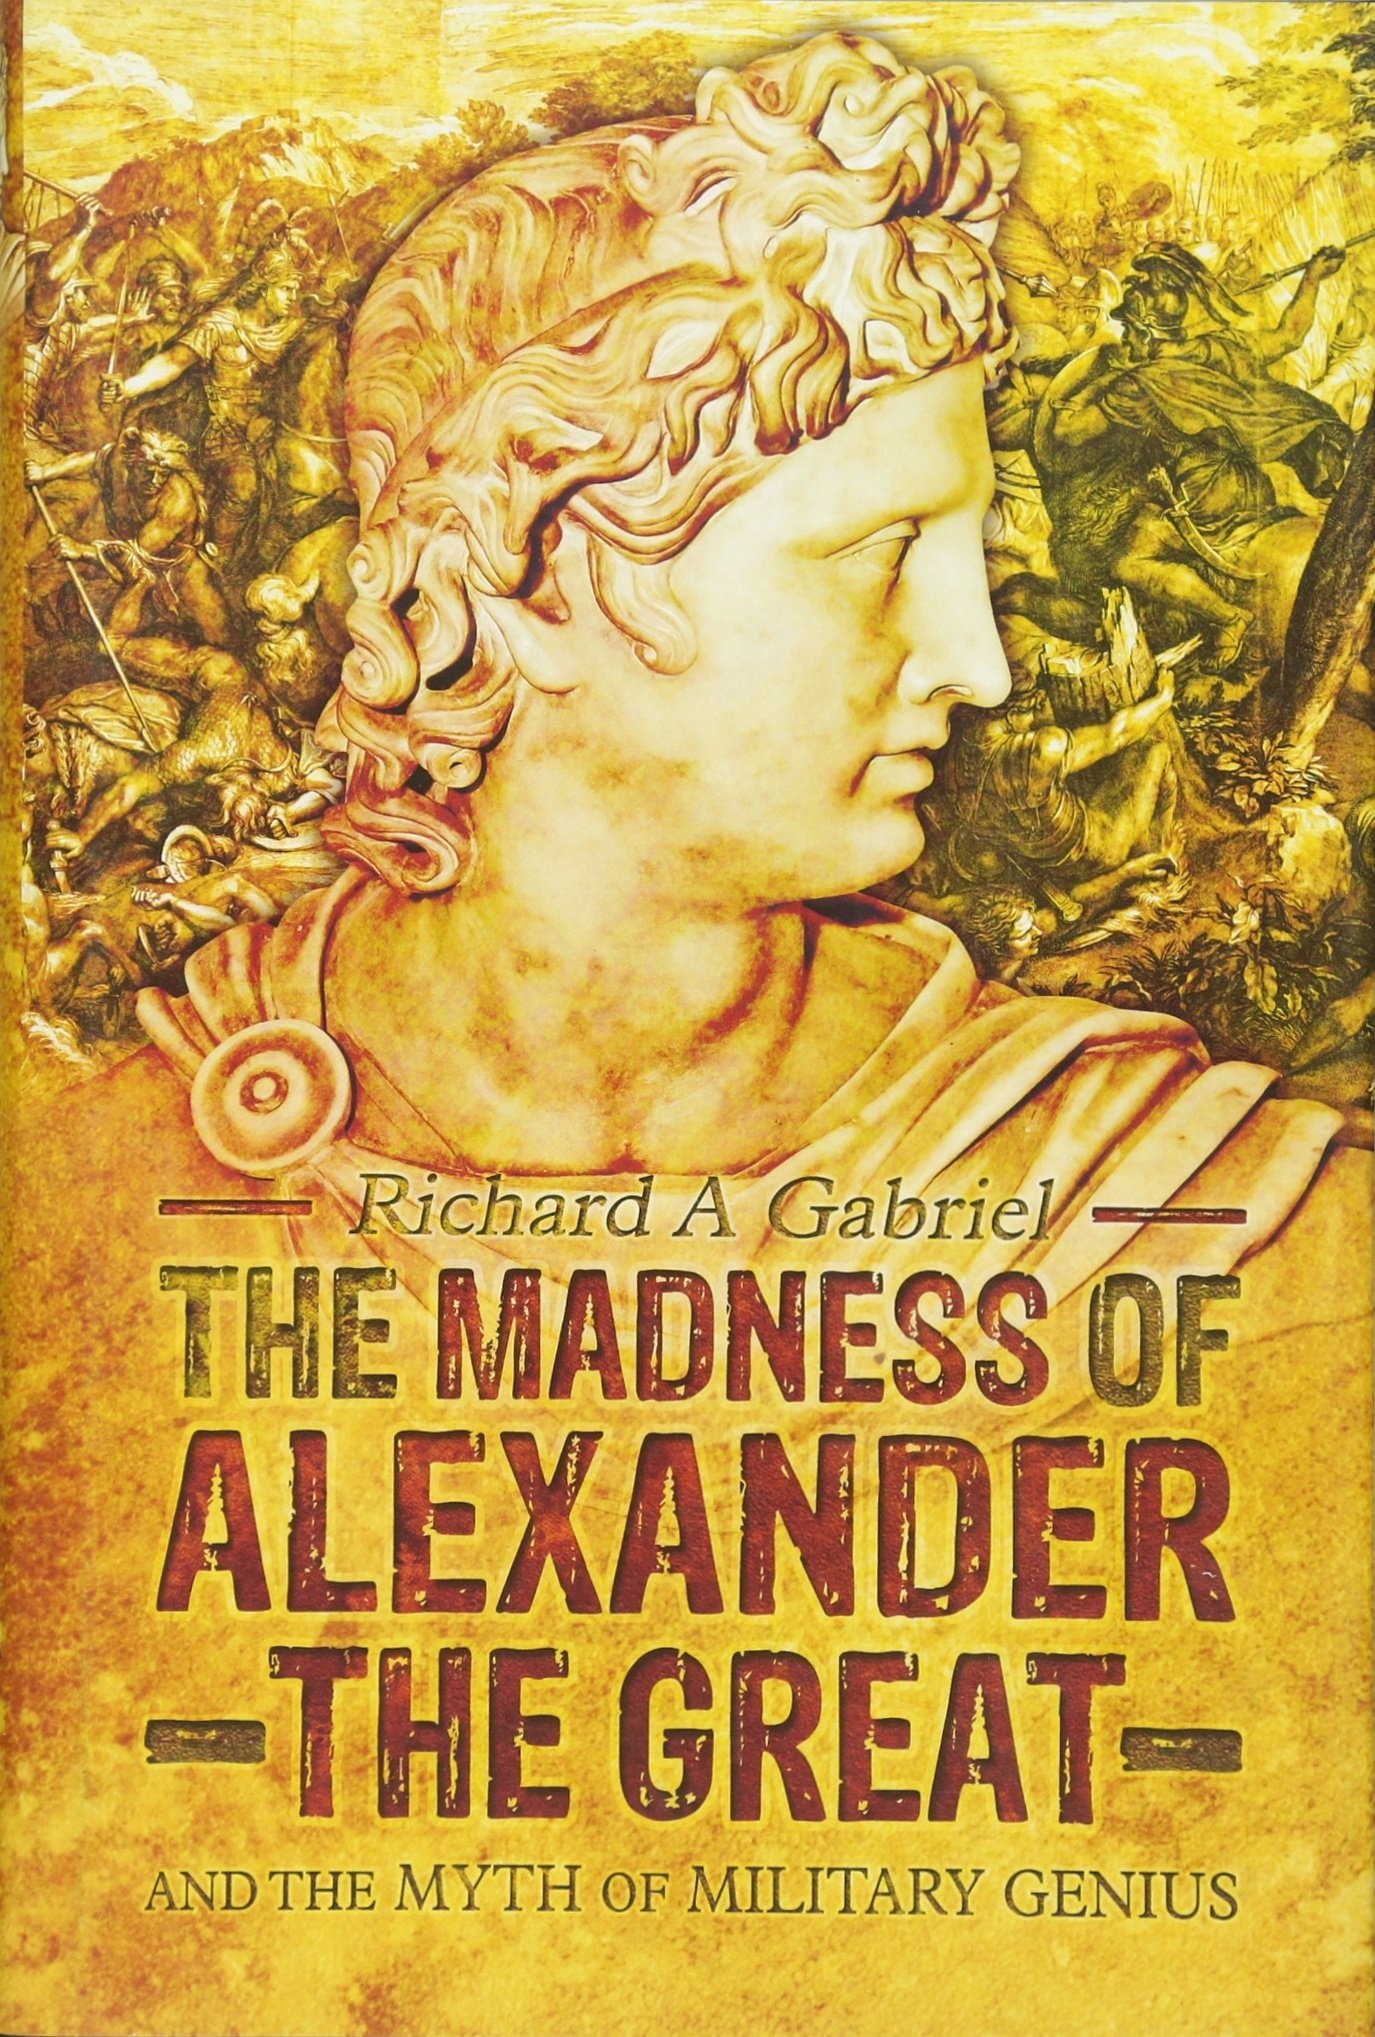 The Madness of Alexander the Great: And the Myth of Military Genius  Hardcover – April 15, 2015